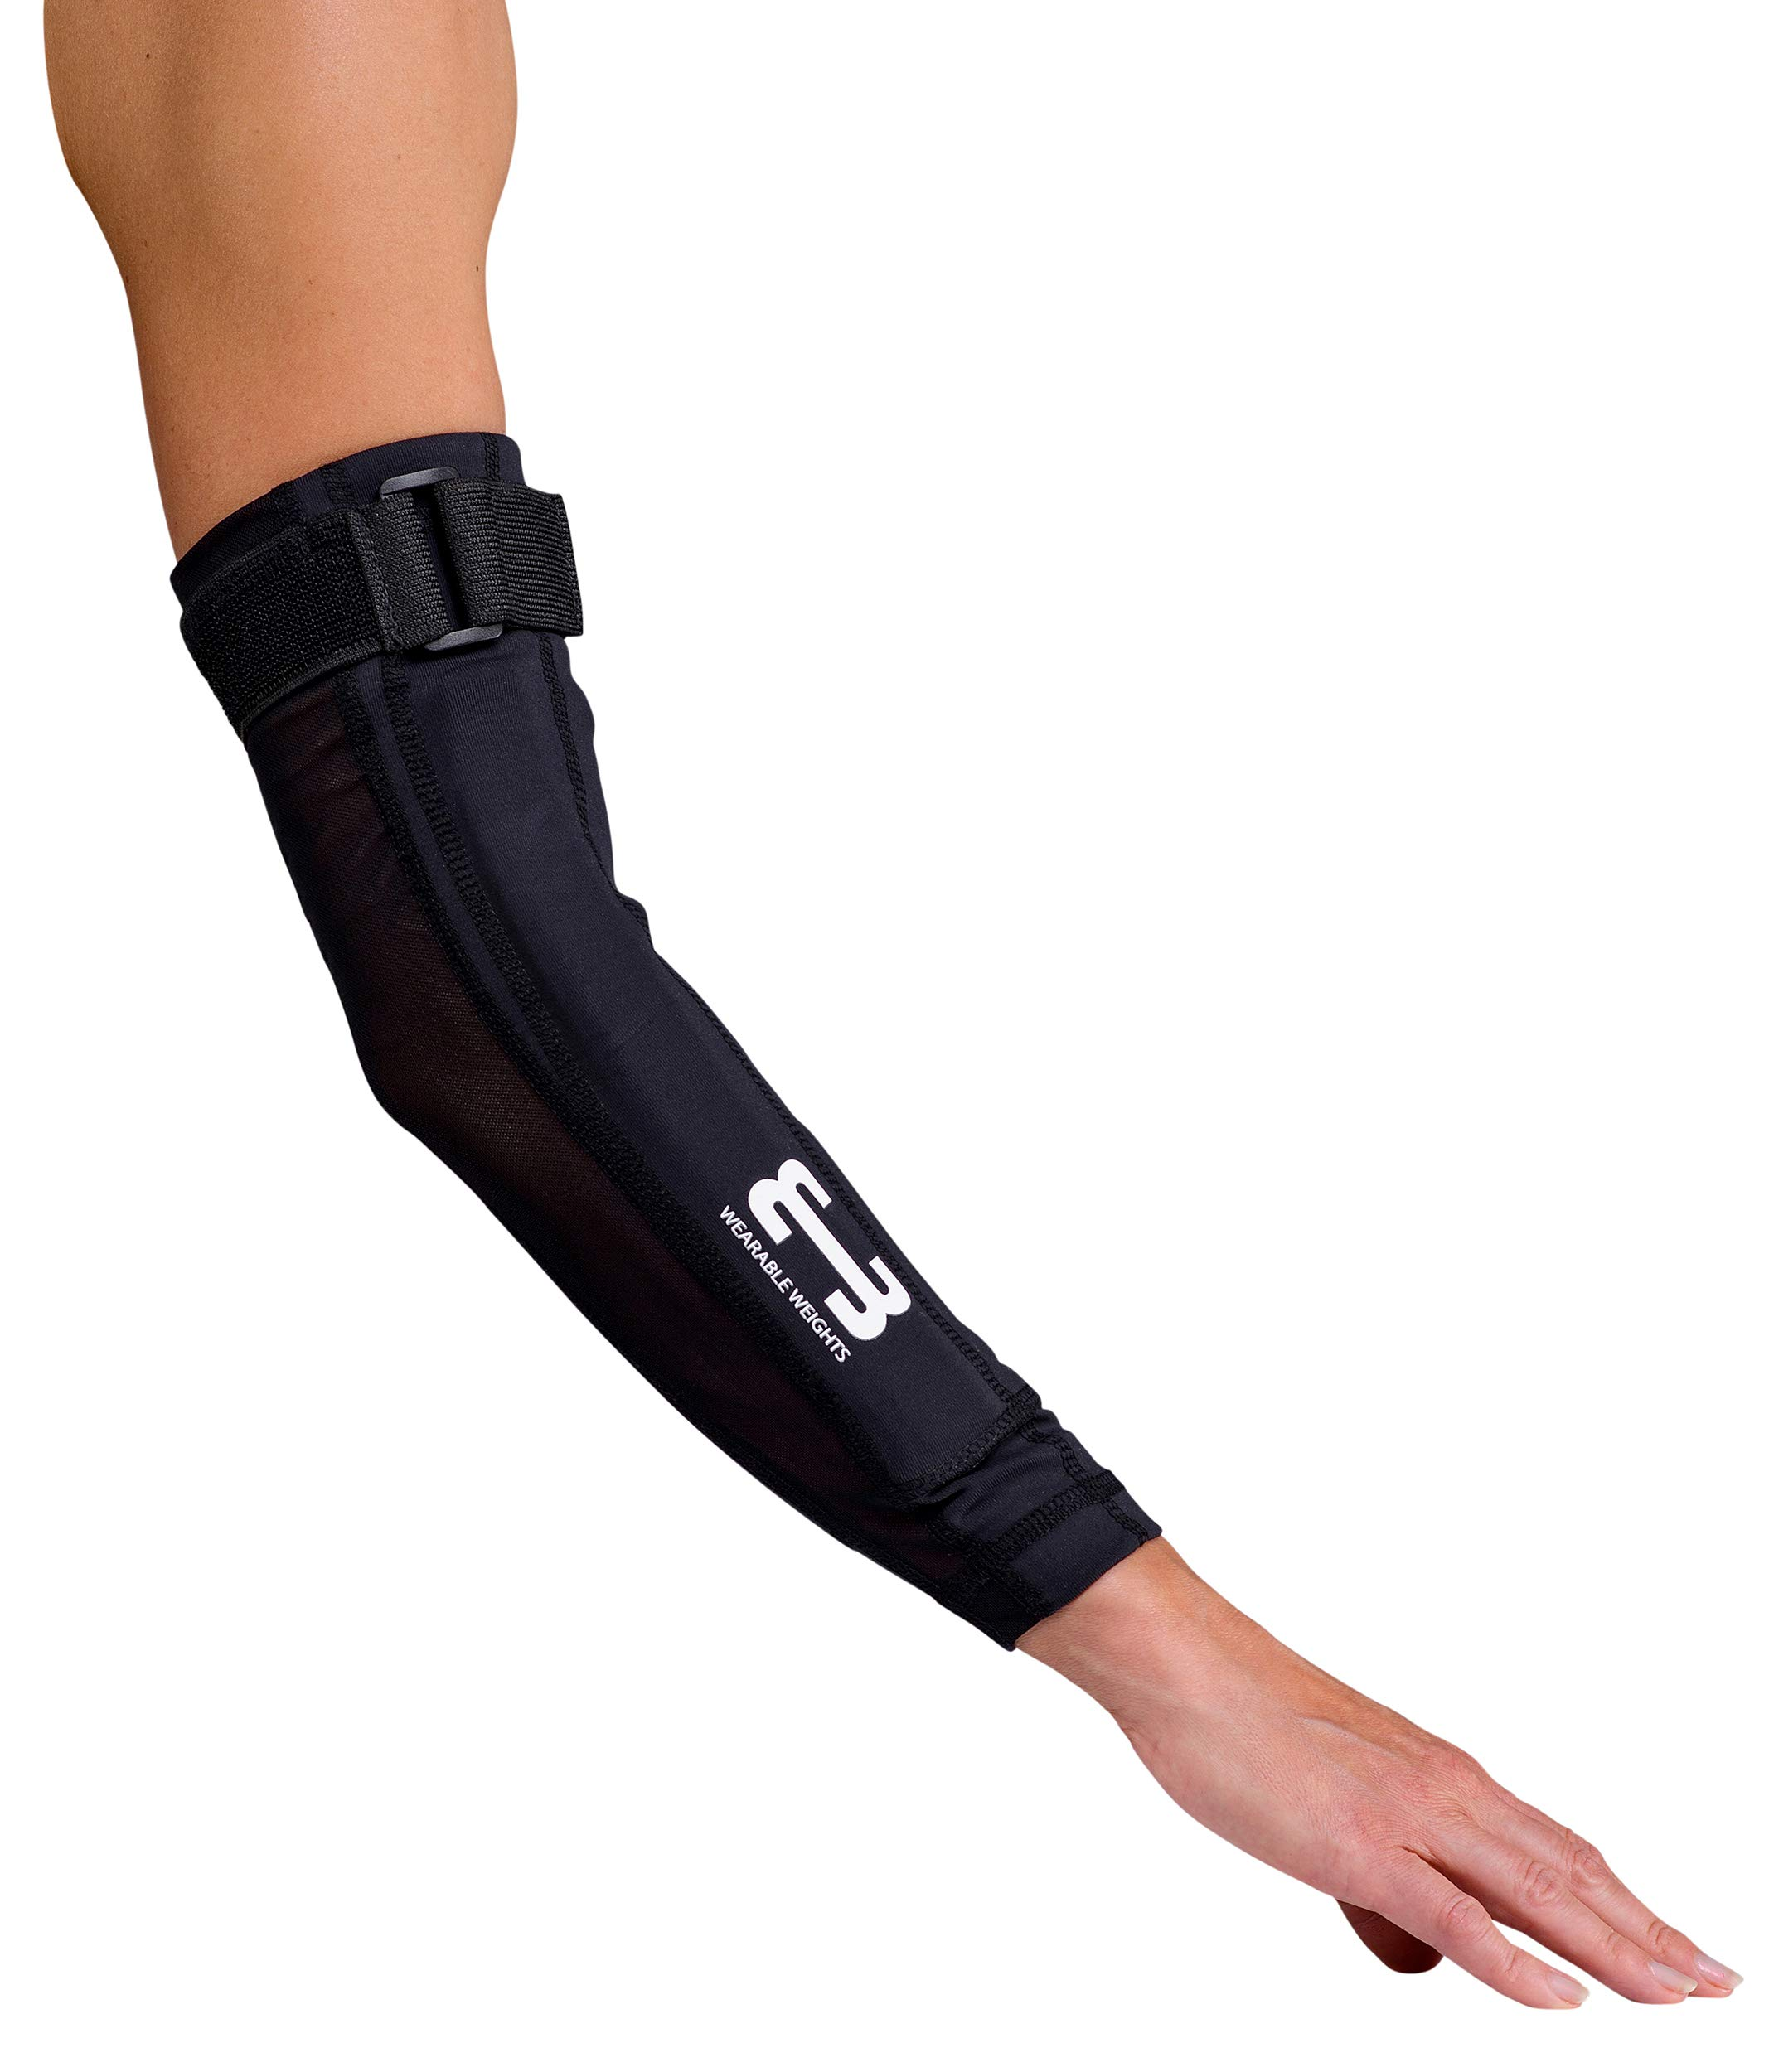 Wearable Weights Weighted Black Workout Compression Arm Sleeves (XL, 1.5lbs Each)